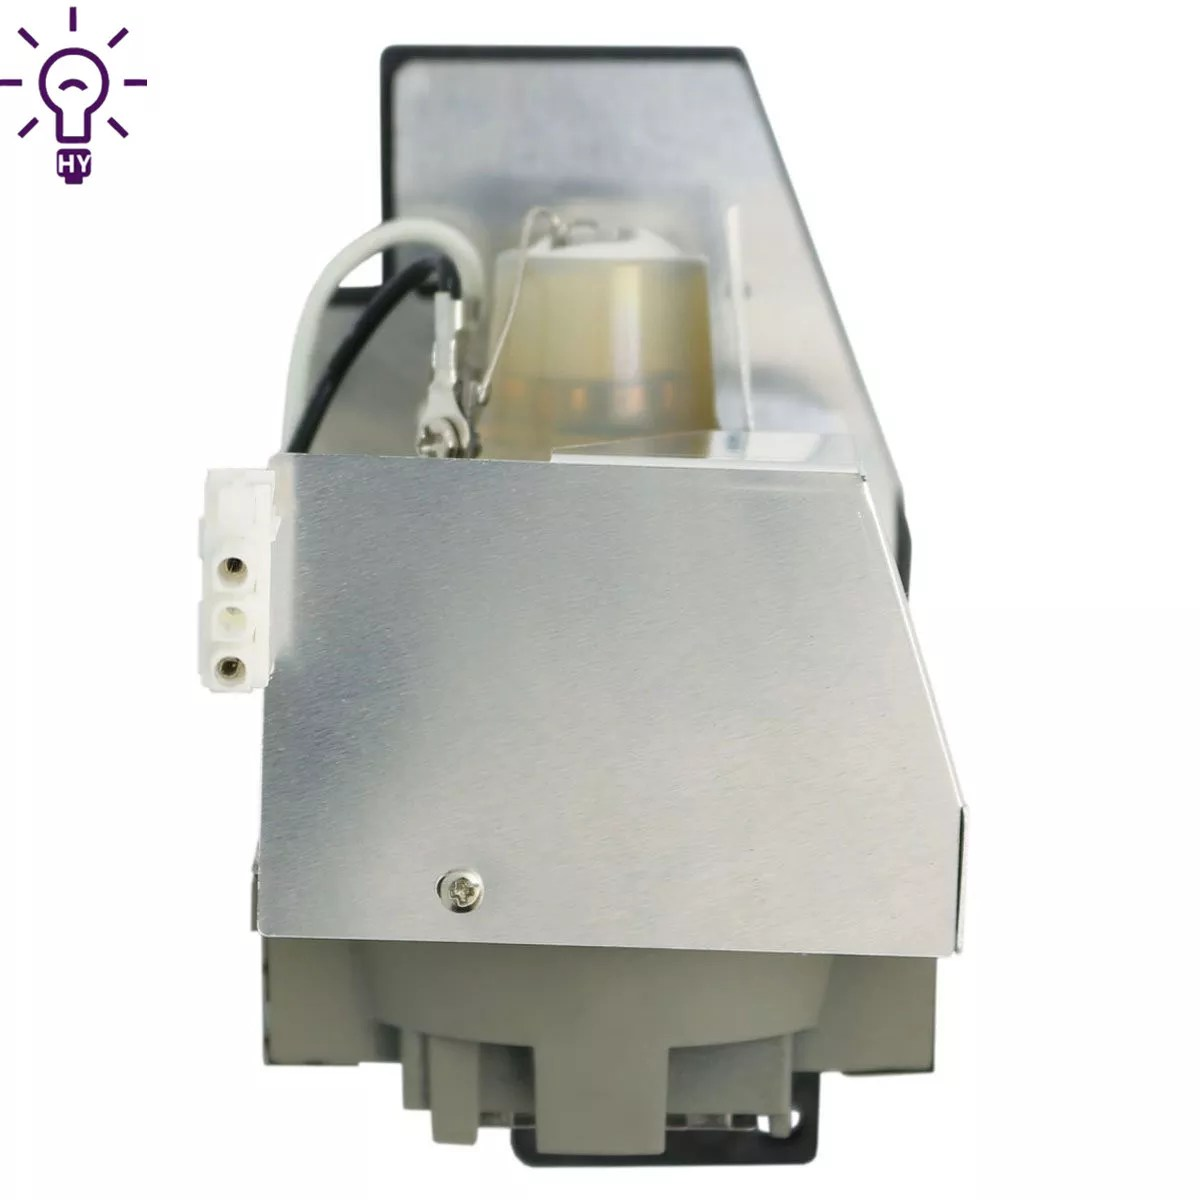 Benq Lamp Uhp300 250w 1 1e21 7 Original Lamp With Housing 5j J4n05 001 For Benq Mx717 Mx763 Mx764 Buy 5j J4n05 001 Lamp For Benq Mx717 Benq Mx763 Lamp Product